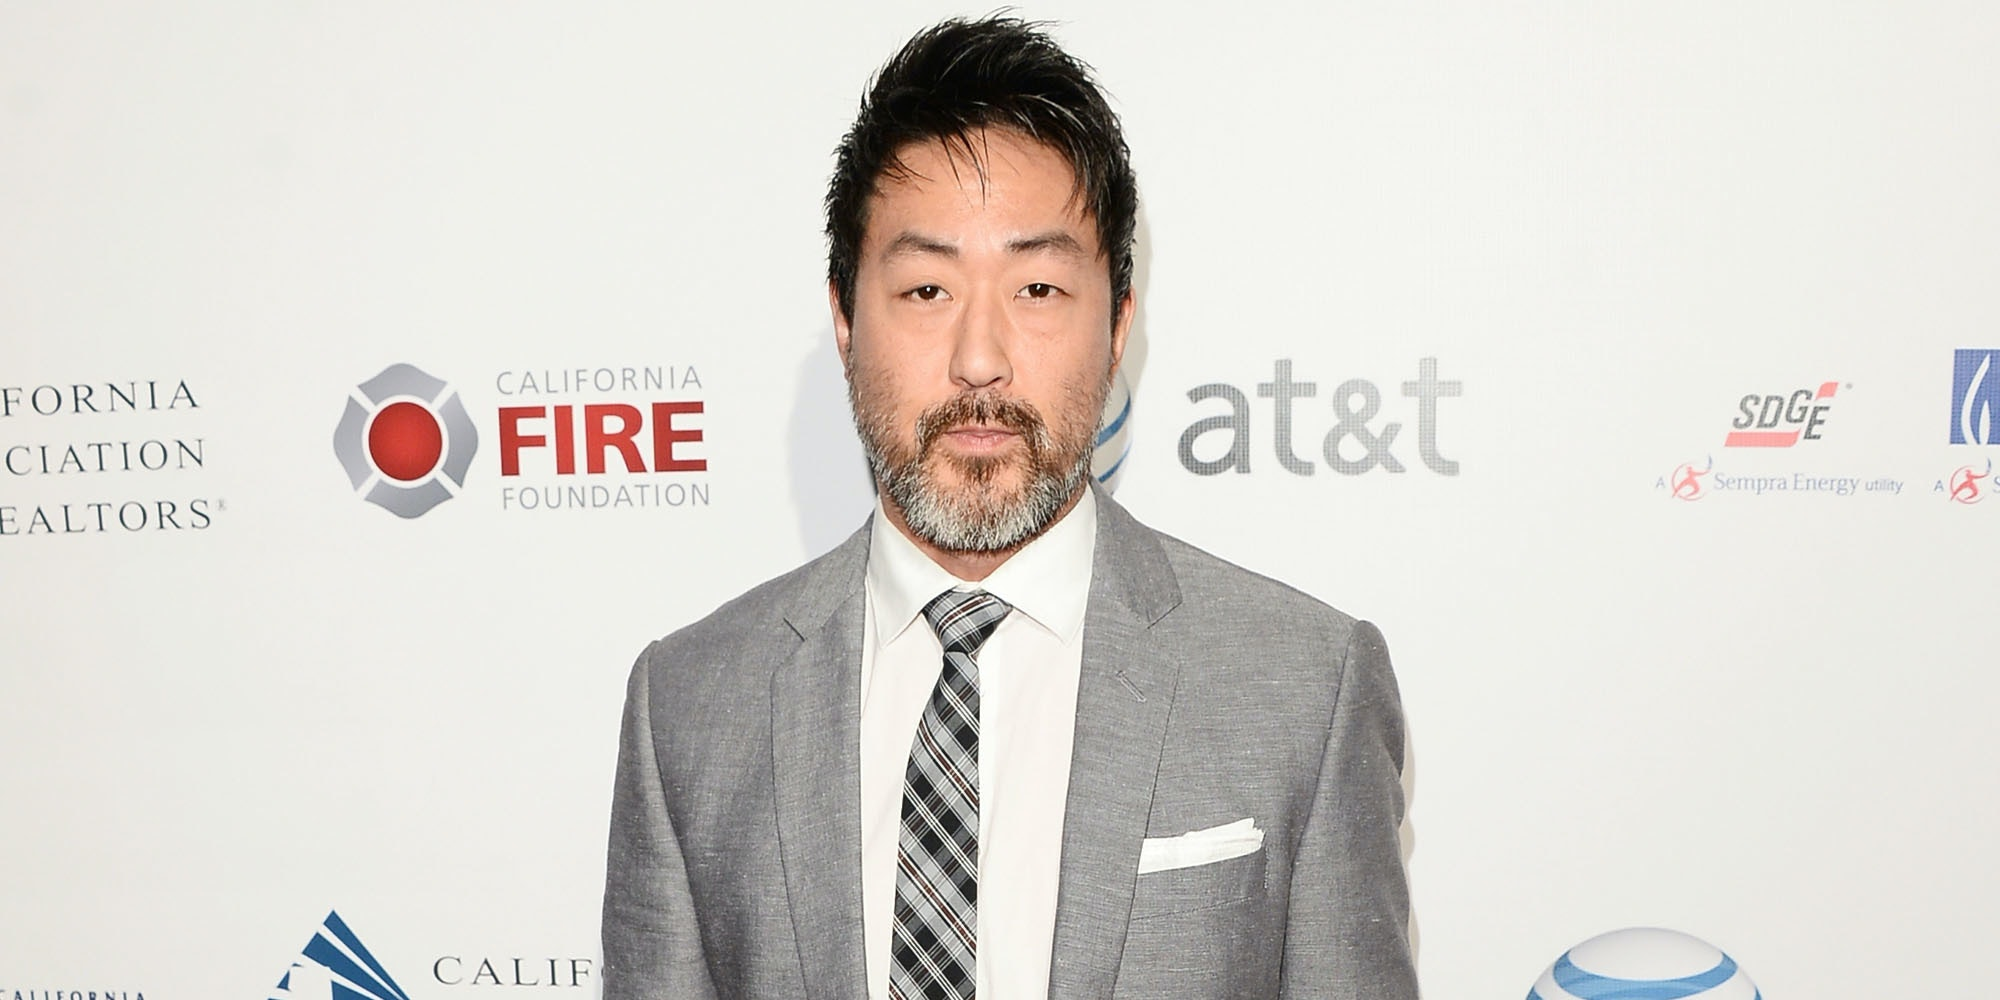 LOS ANGELES, CA - MARCH 09:  Actor Kenneth Choi arrives at the California Fire Foundation 2016 Gala at Avalon Hollywood on March 9, 2016 in Los Angeles, California.  (Photo by Matt Winkelmeyer/Getty Images)